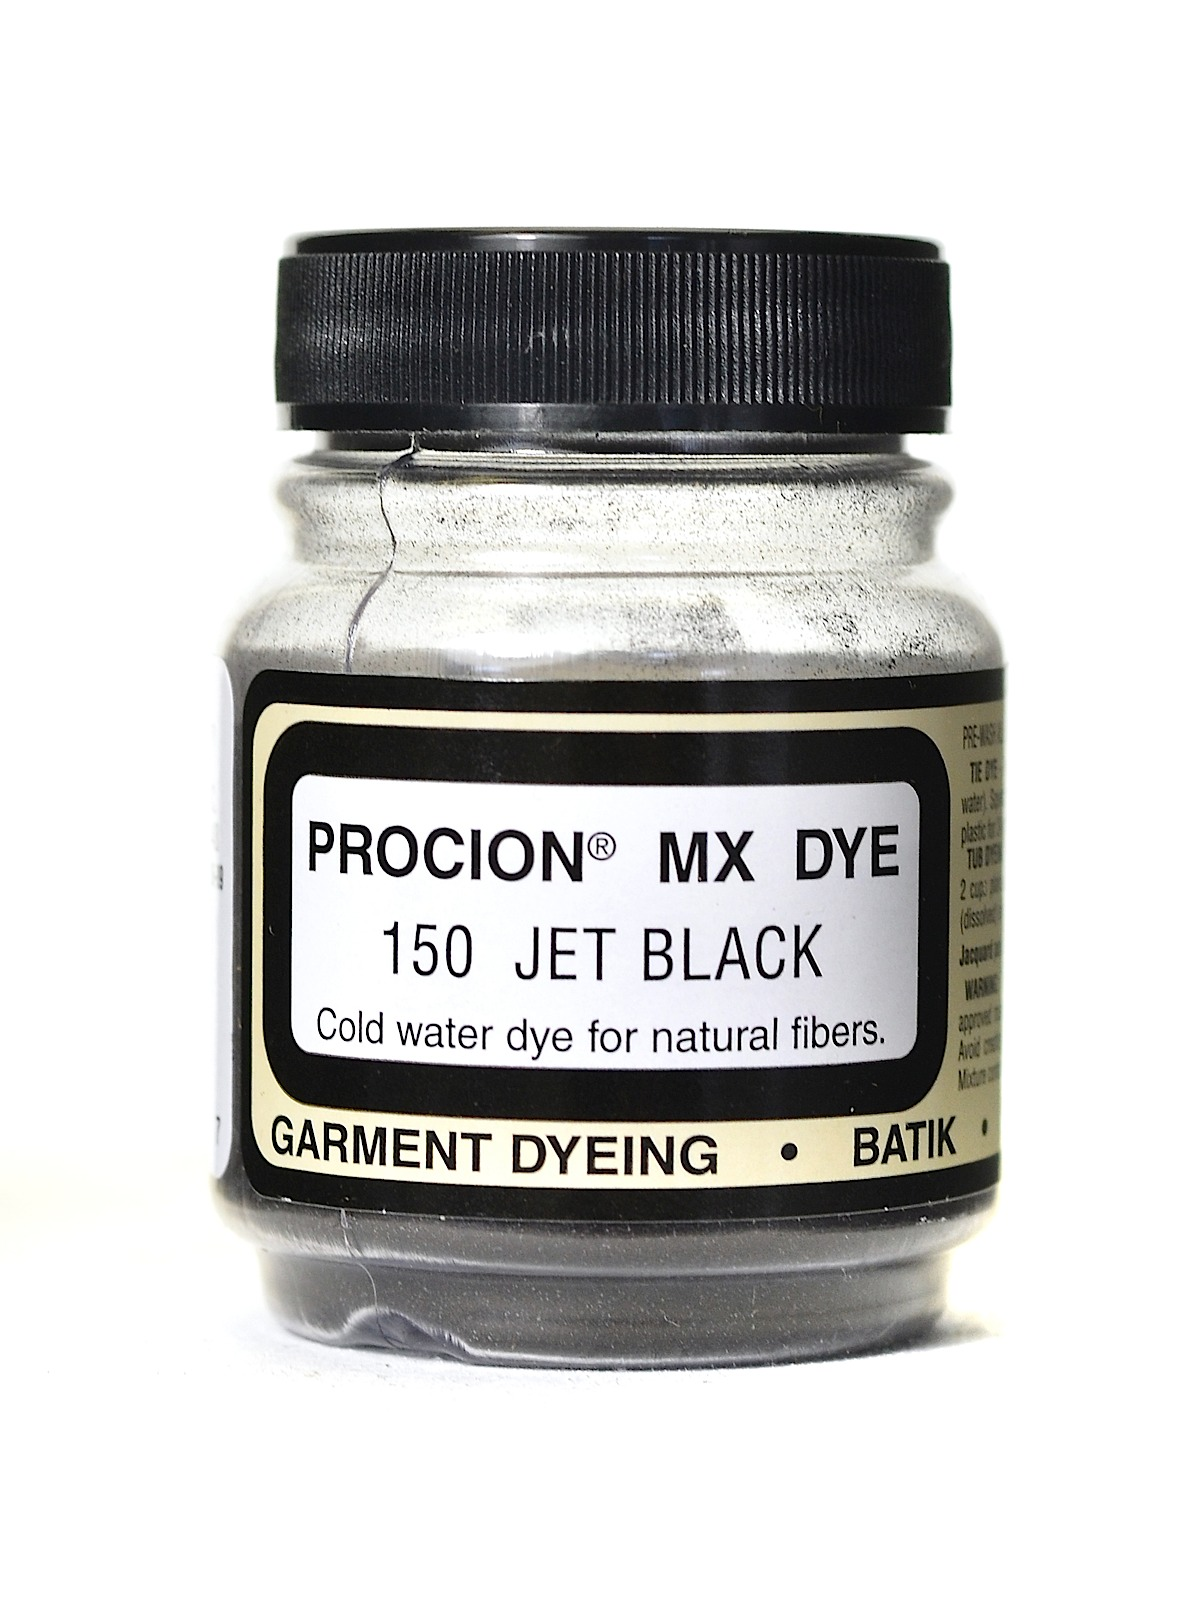 Jacquard Procion MX dye 2211 neutral grey